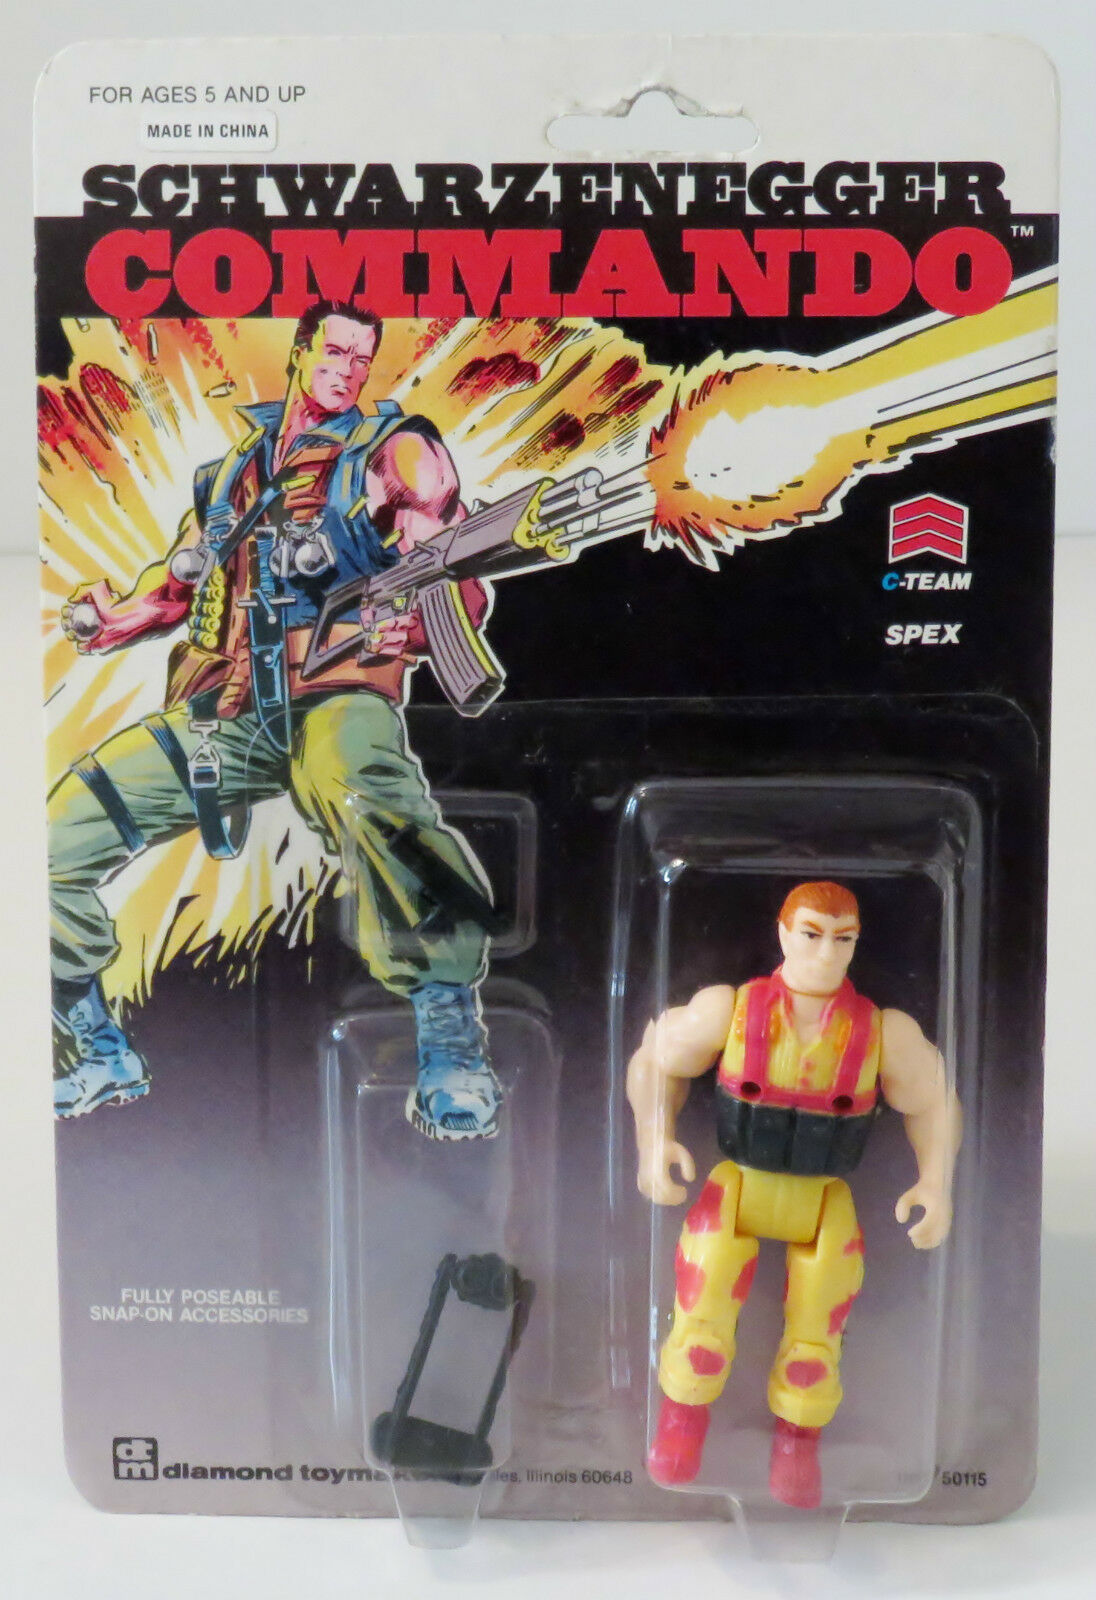 blackenegger blackenegger blackenegger Commando   C-Team Spex Action Figure 983e94